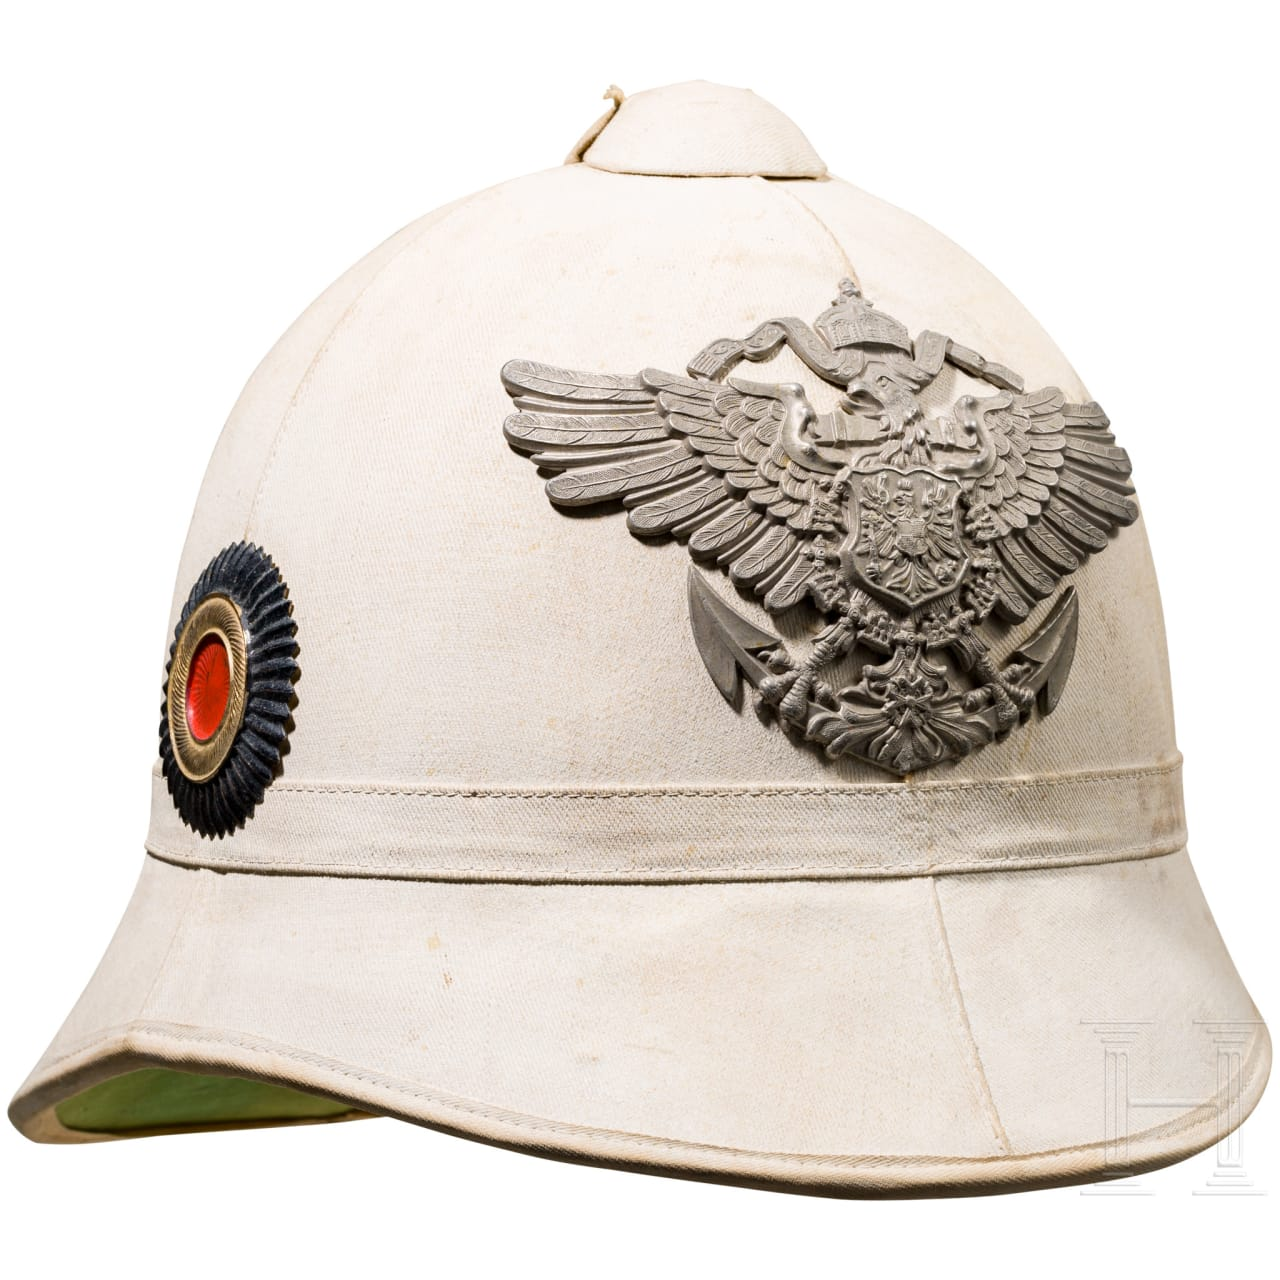 Tropical helmet for a member of the Imperial Navy / sea battalions or the colonial protection force